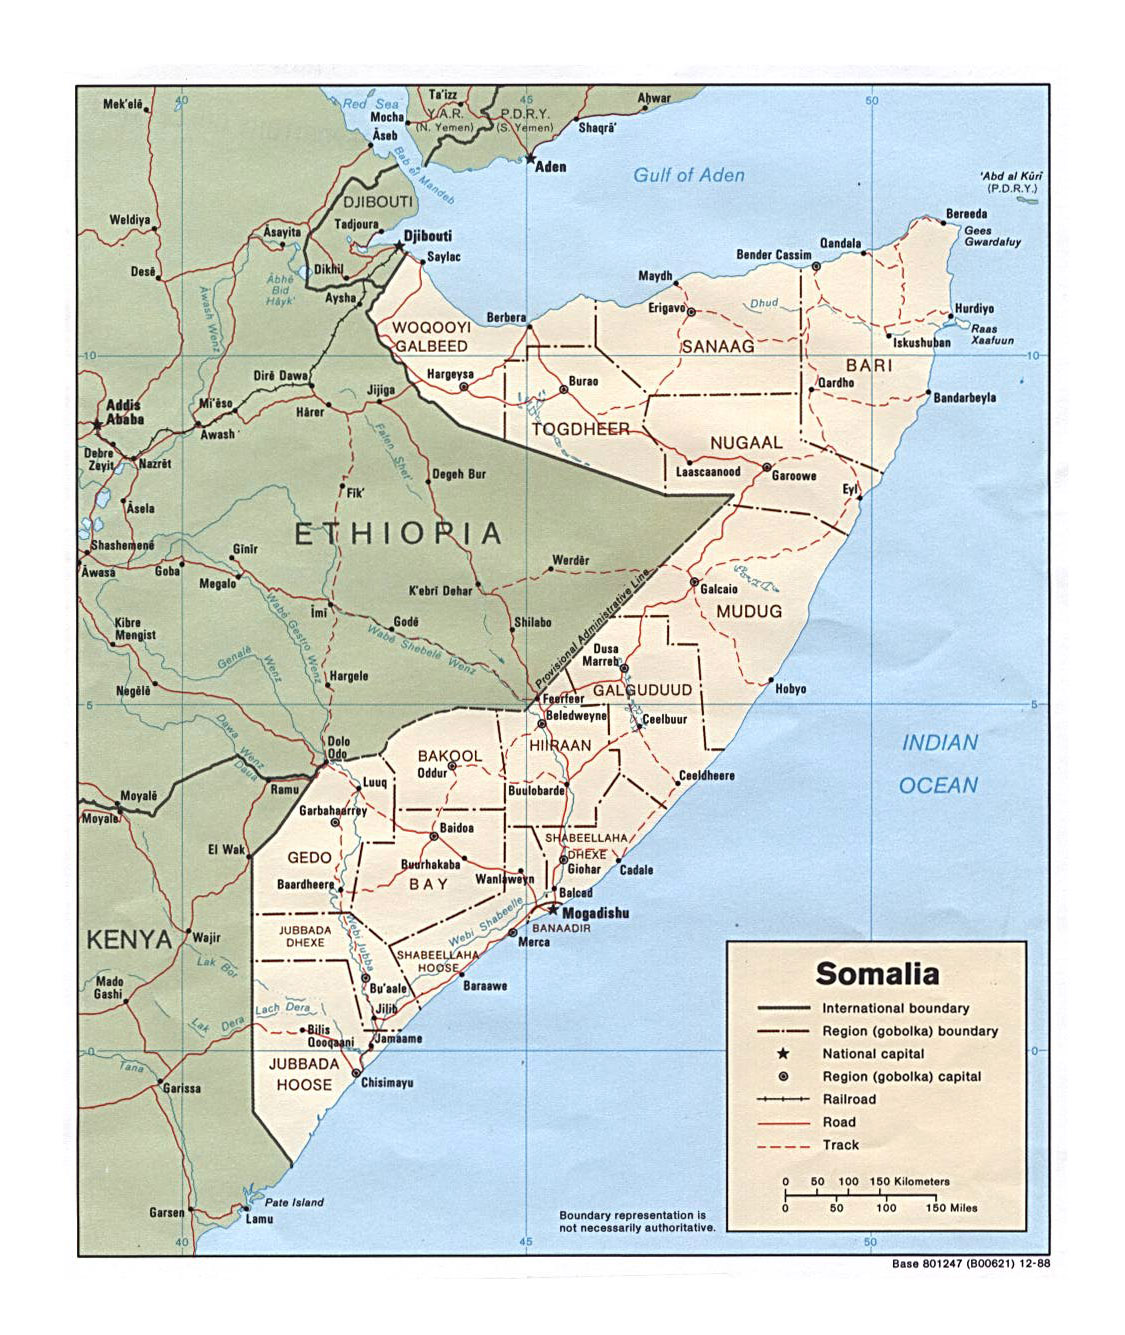 Detailed political and administrative map of Somalia with roads